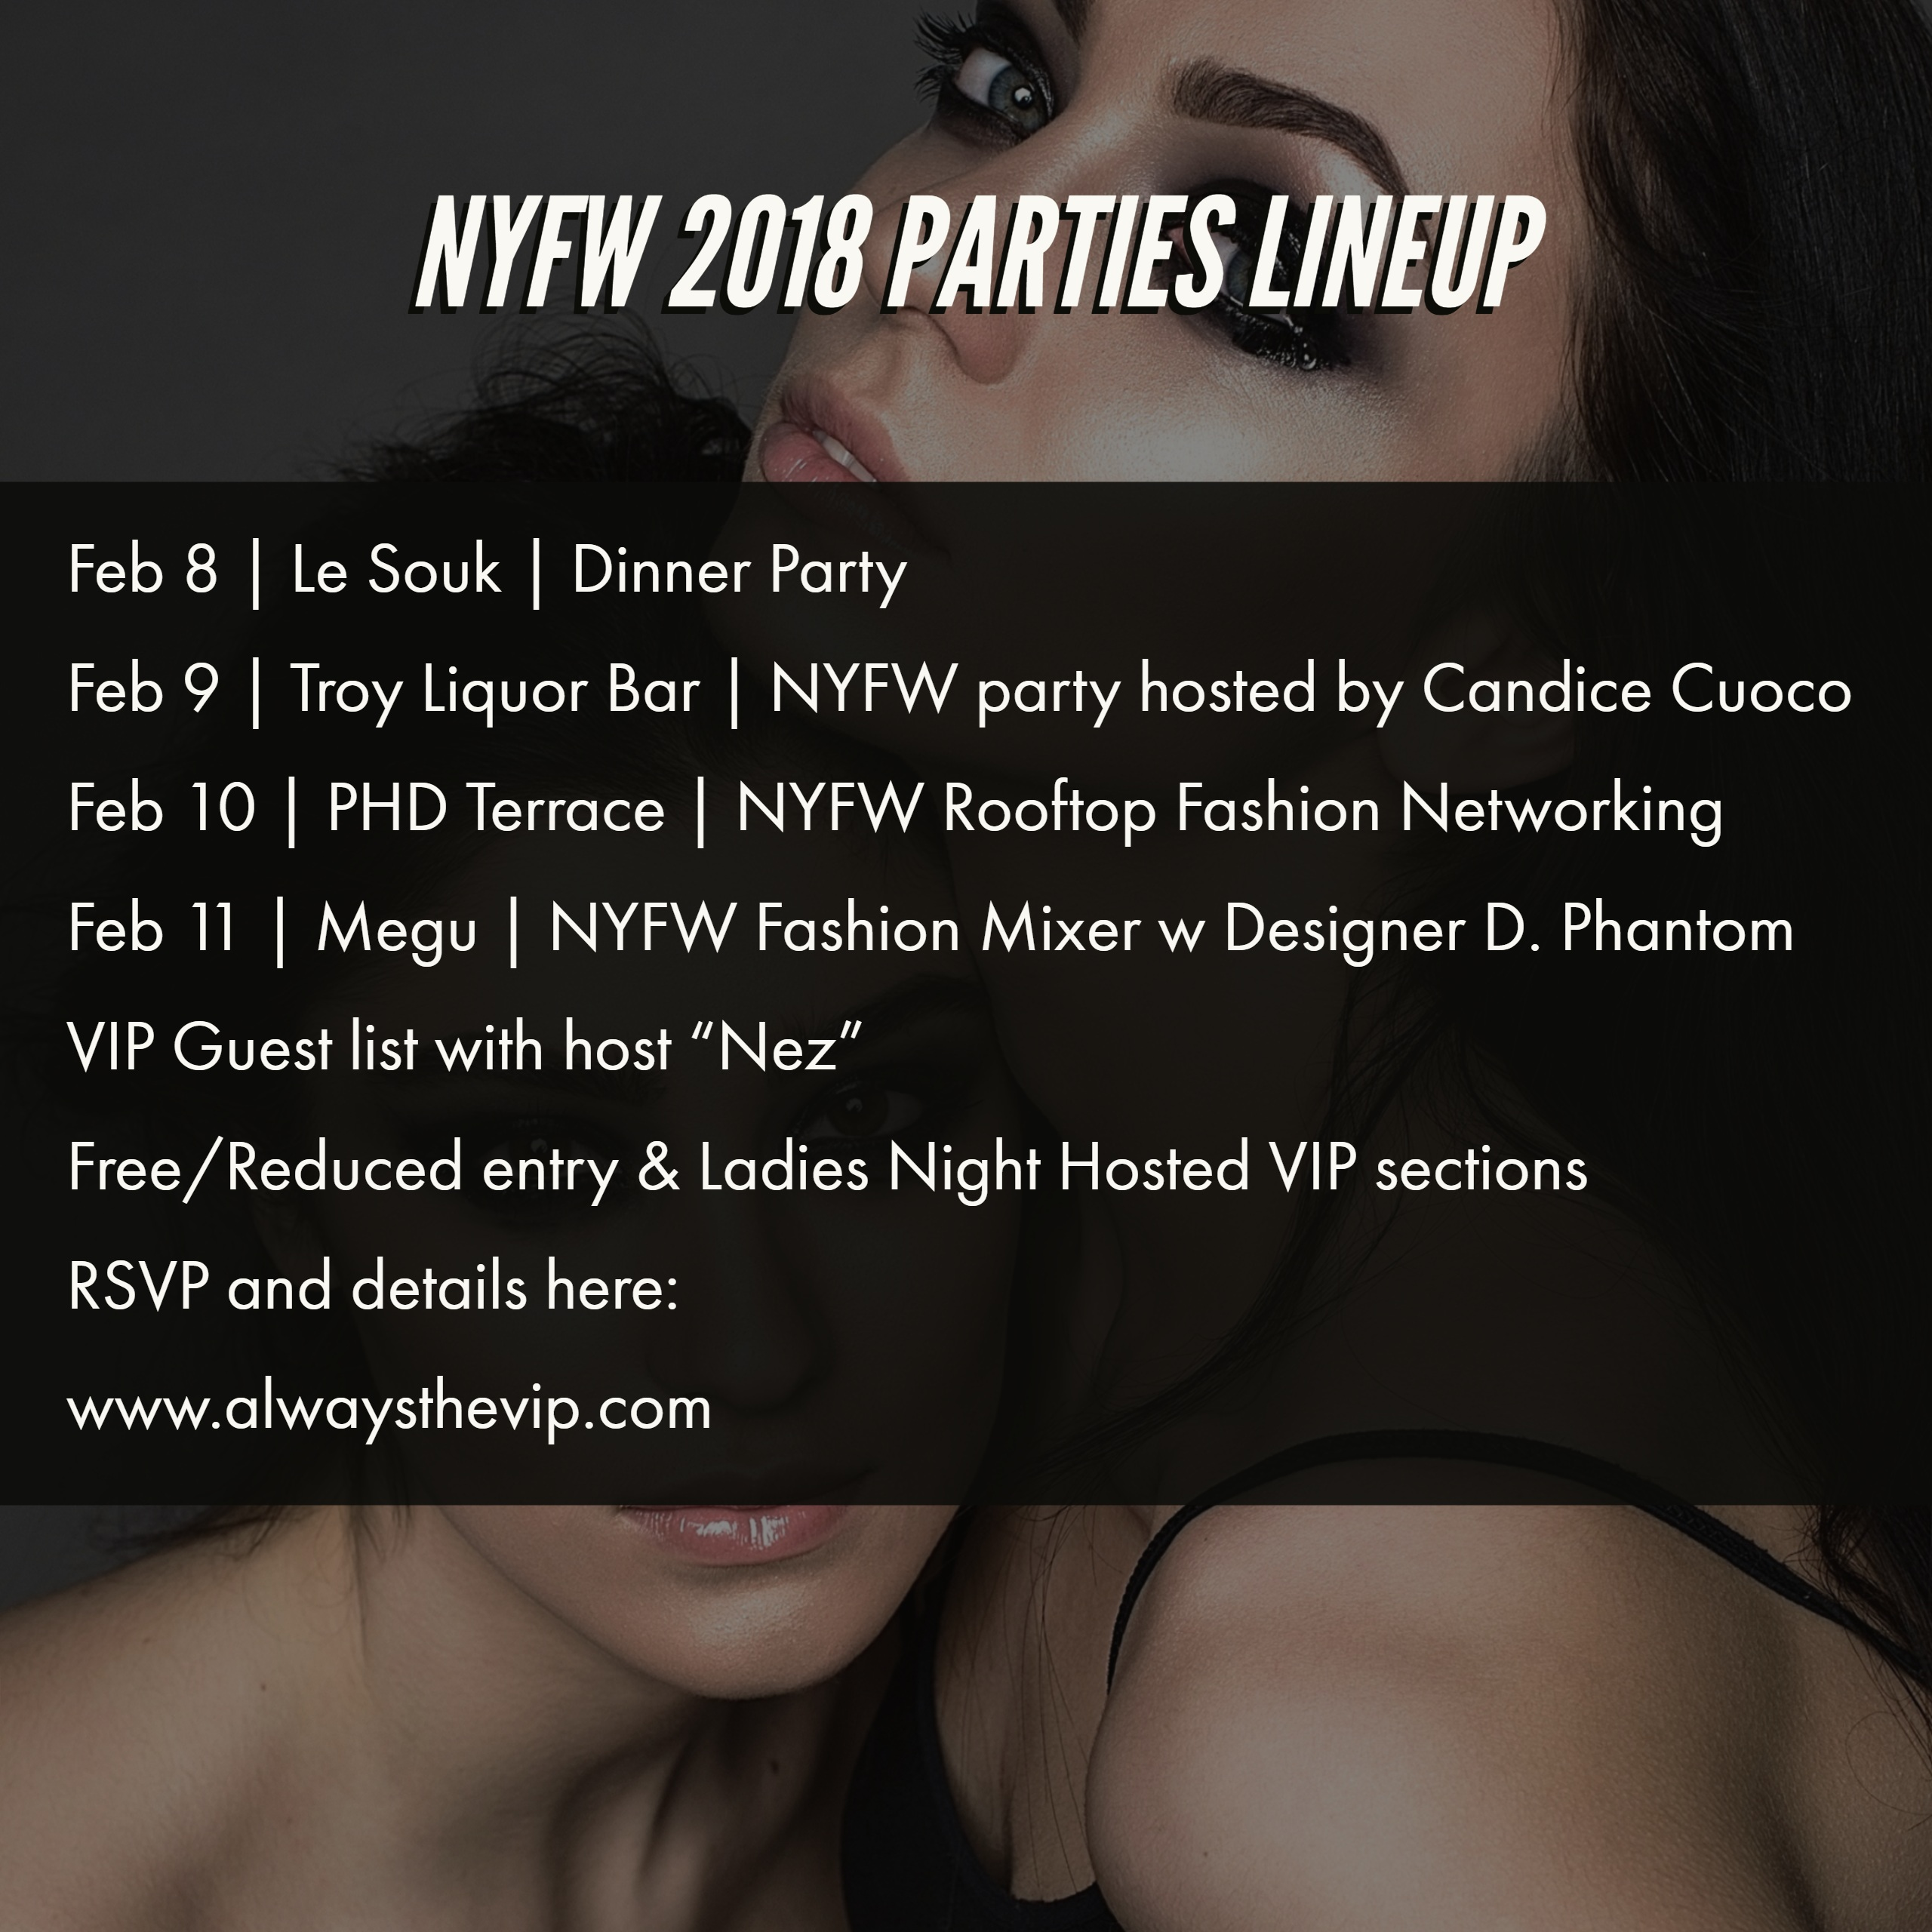 NYFW 2018 party line up